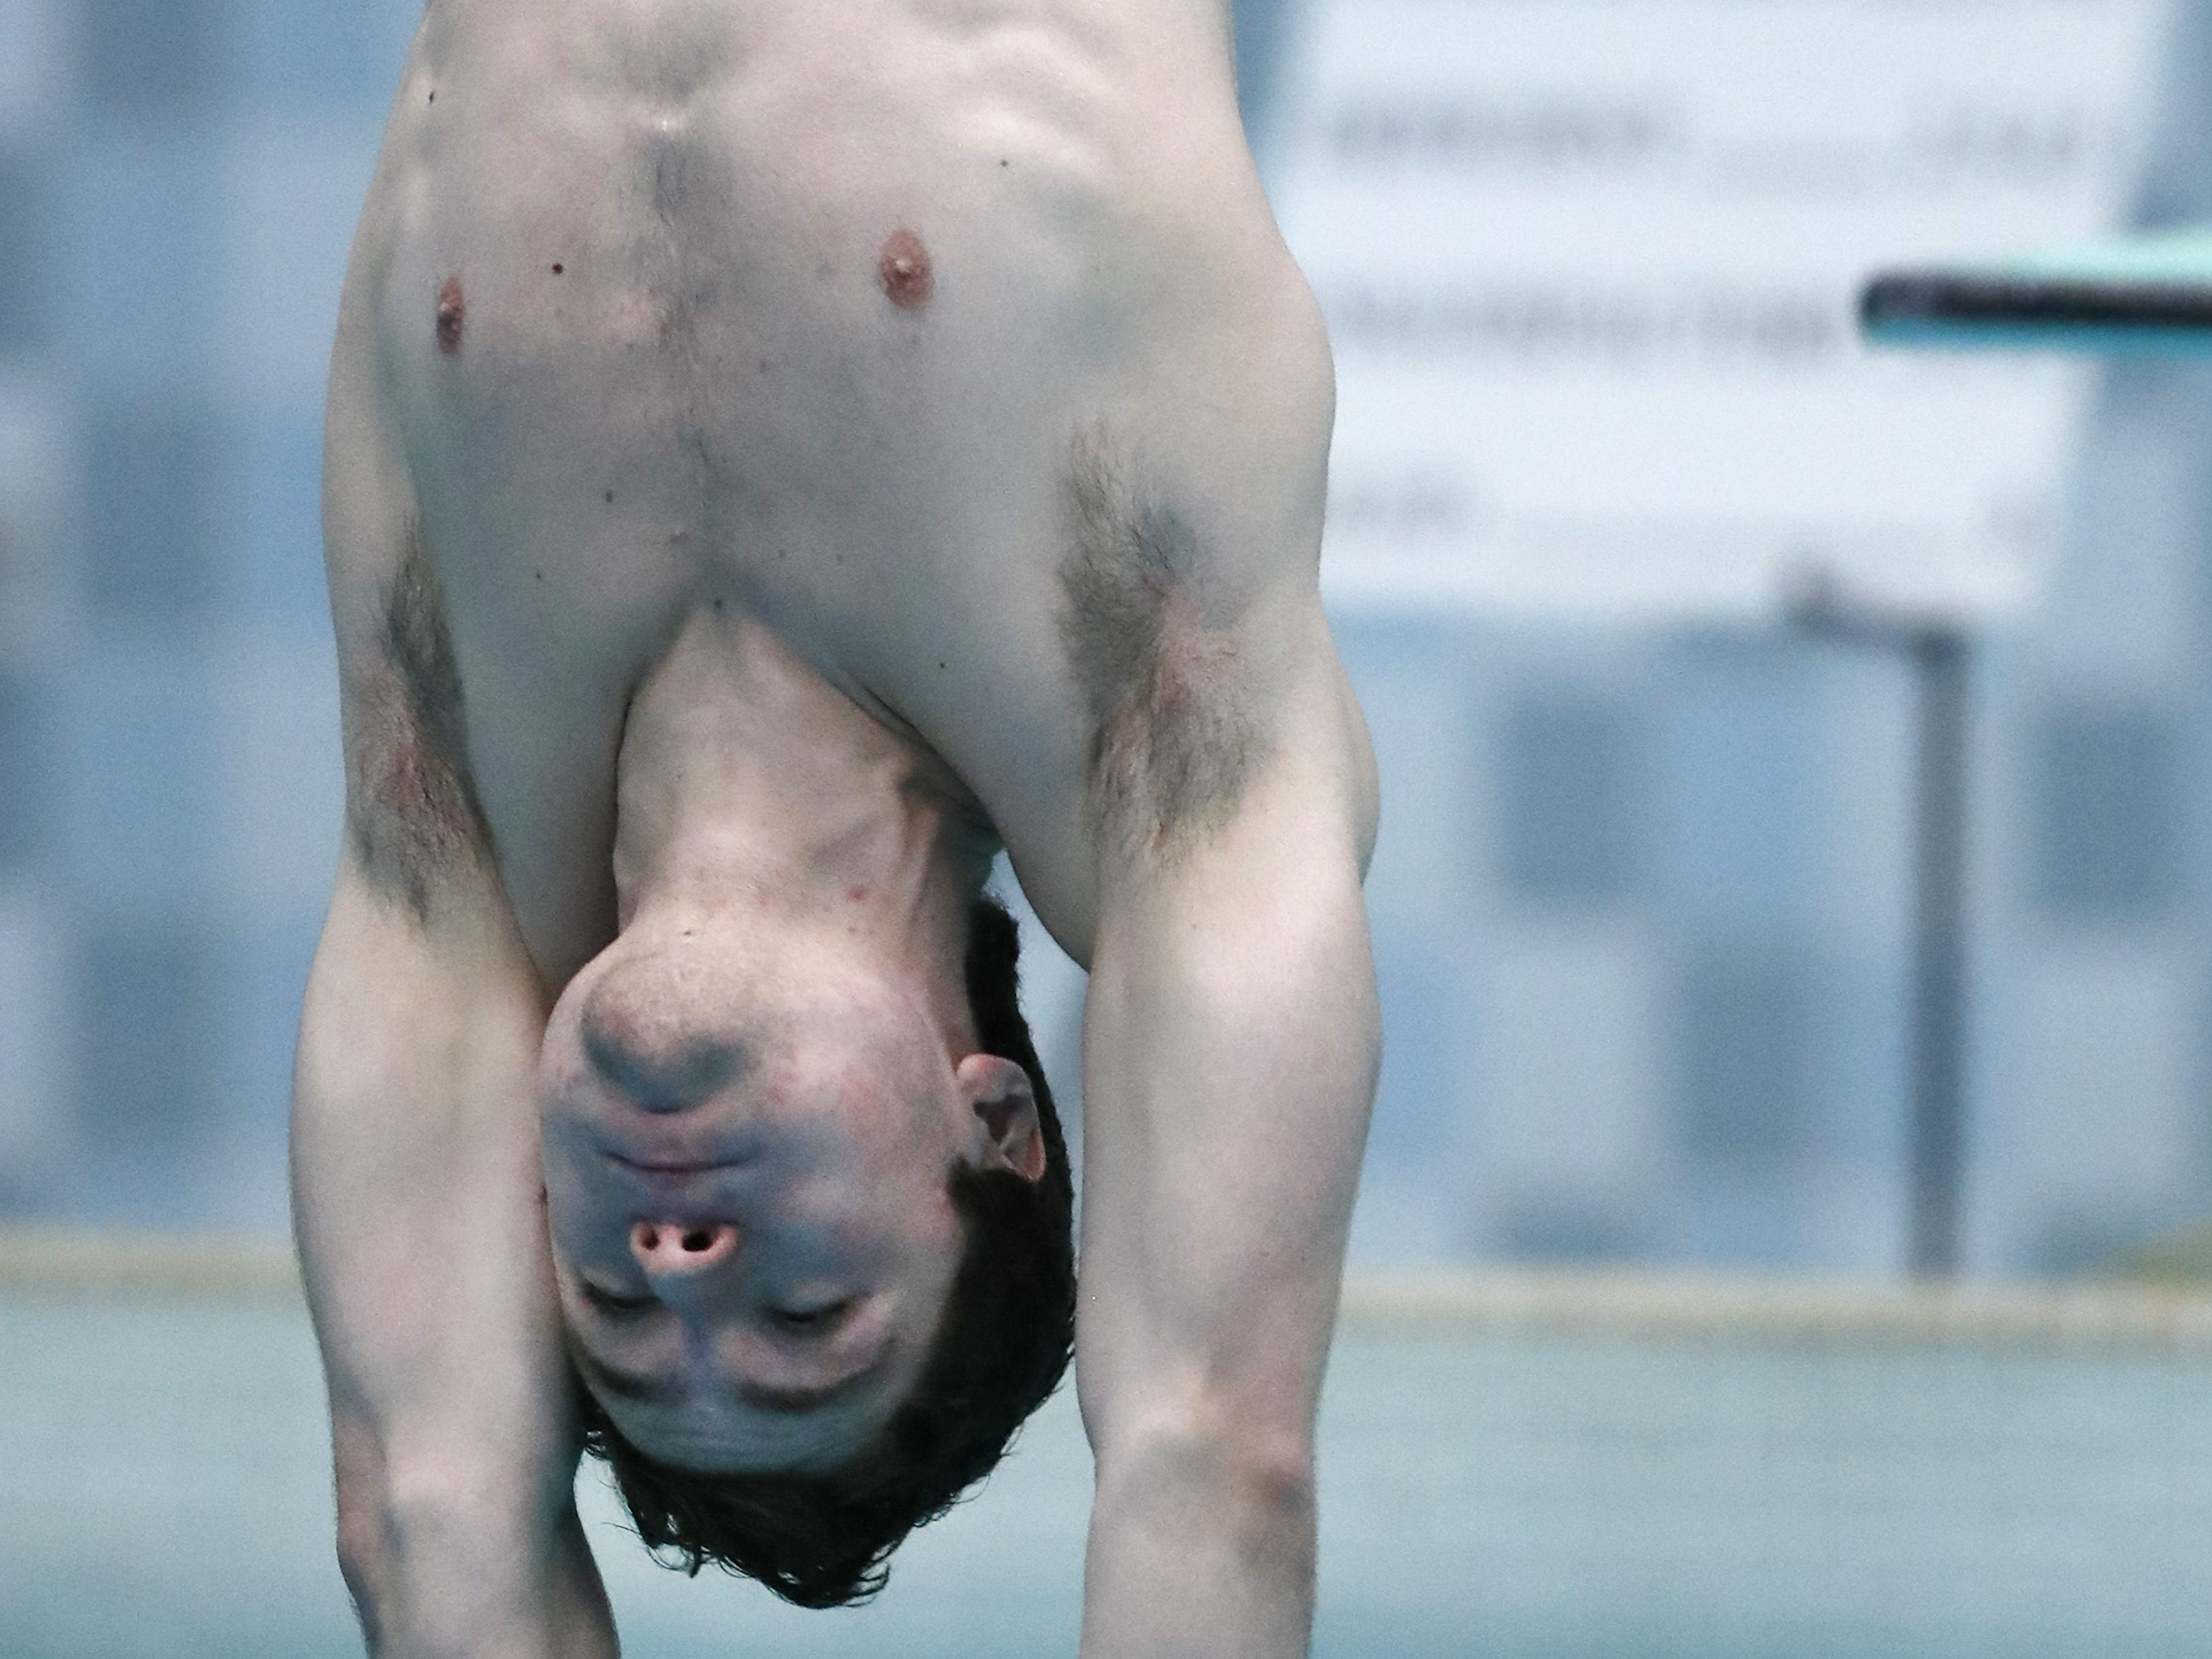 Sheboygan SouthÕs Brock Kovacic dives during the Division 1 2019 State Boys Swimming and Diving Championships Saturday, Feb. 16, 2019, at the UW Natatorium in Madison, Wis. Danny Damiani/USA TODAY NETWORK-Wisconsin